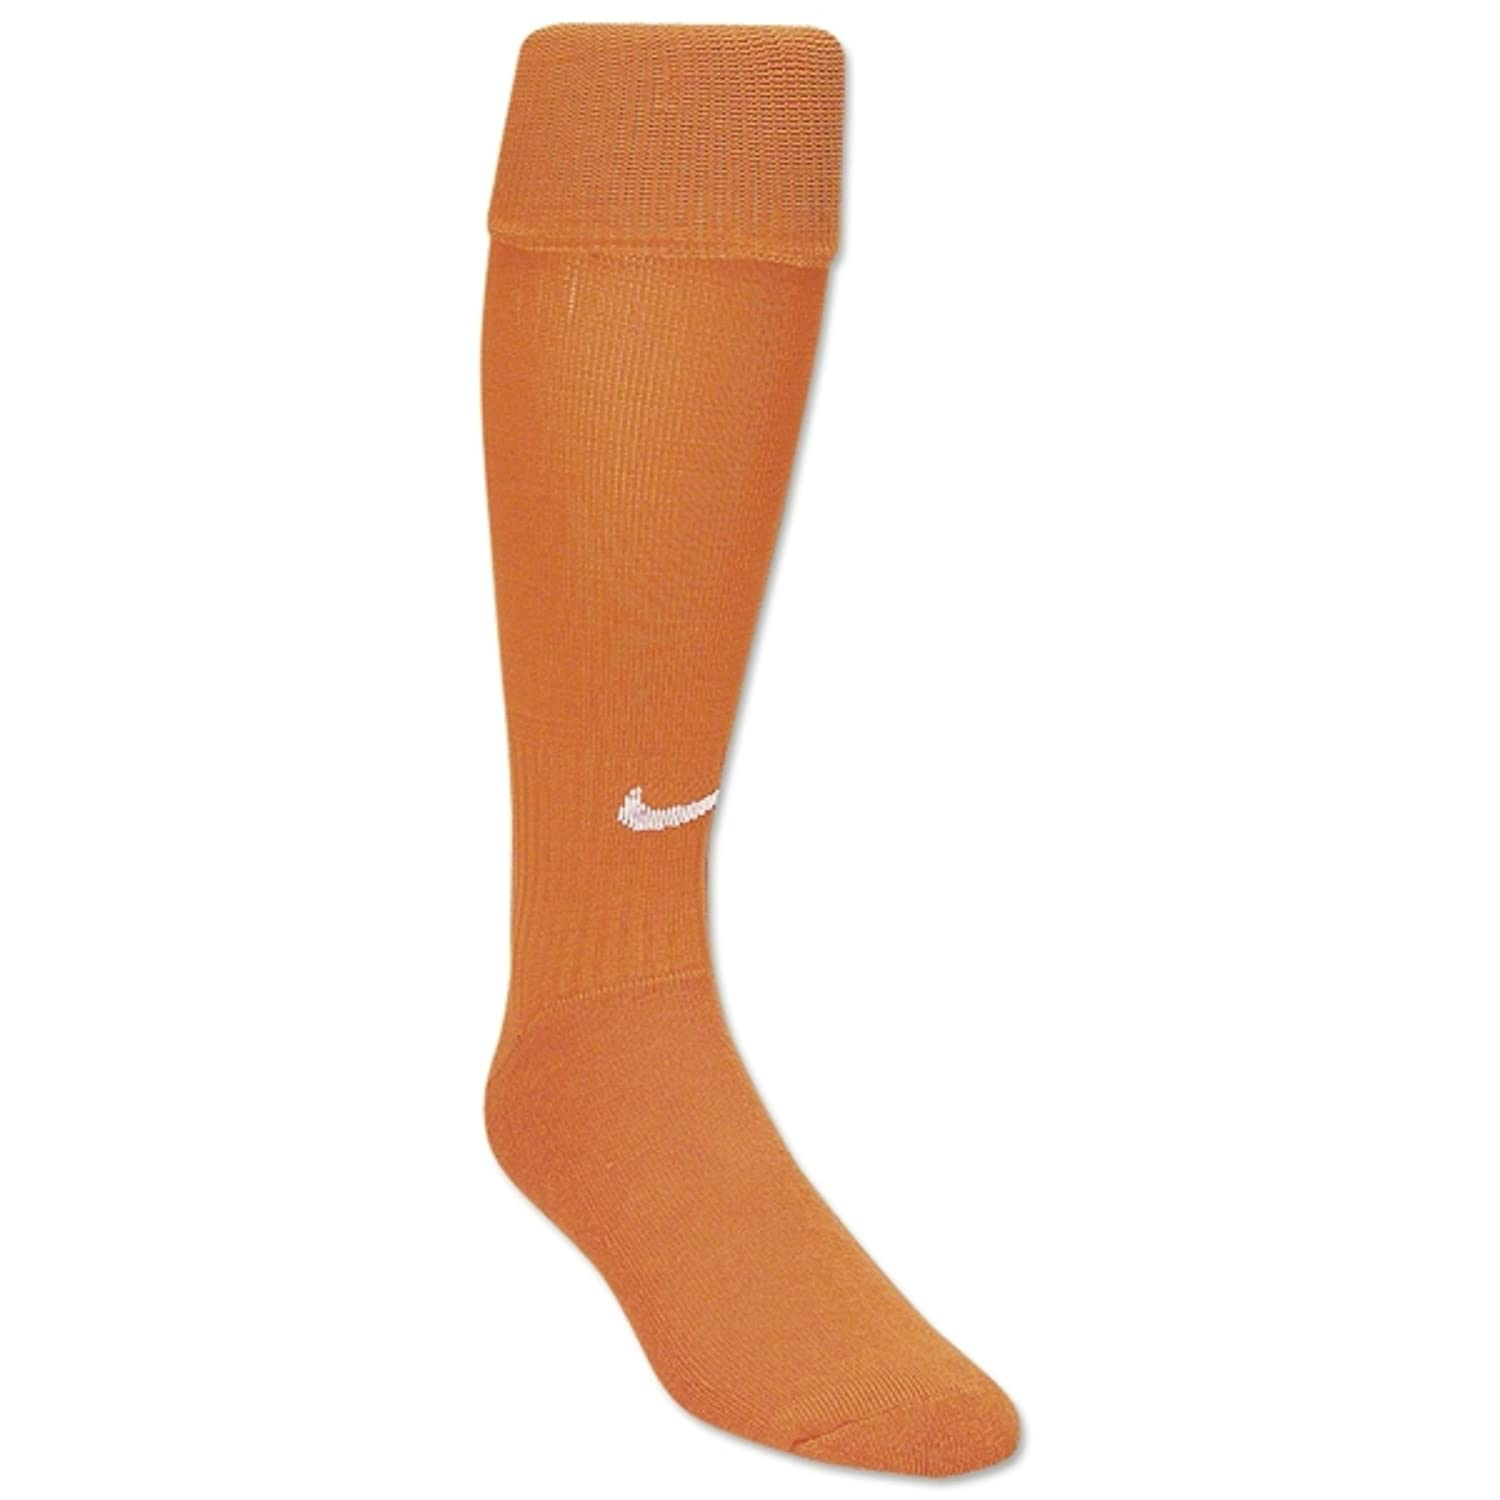 f904d605c Amazon.com  Nike Unisex Classic II Cushion Over-the-Calf Football Sock  (Small